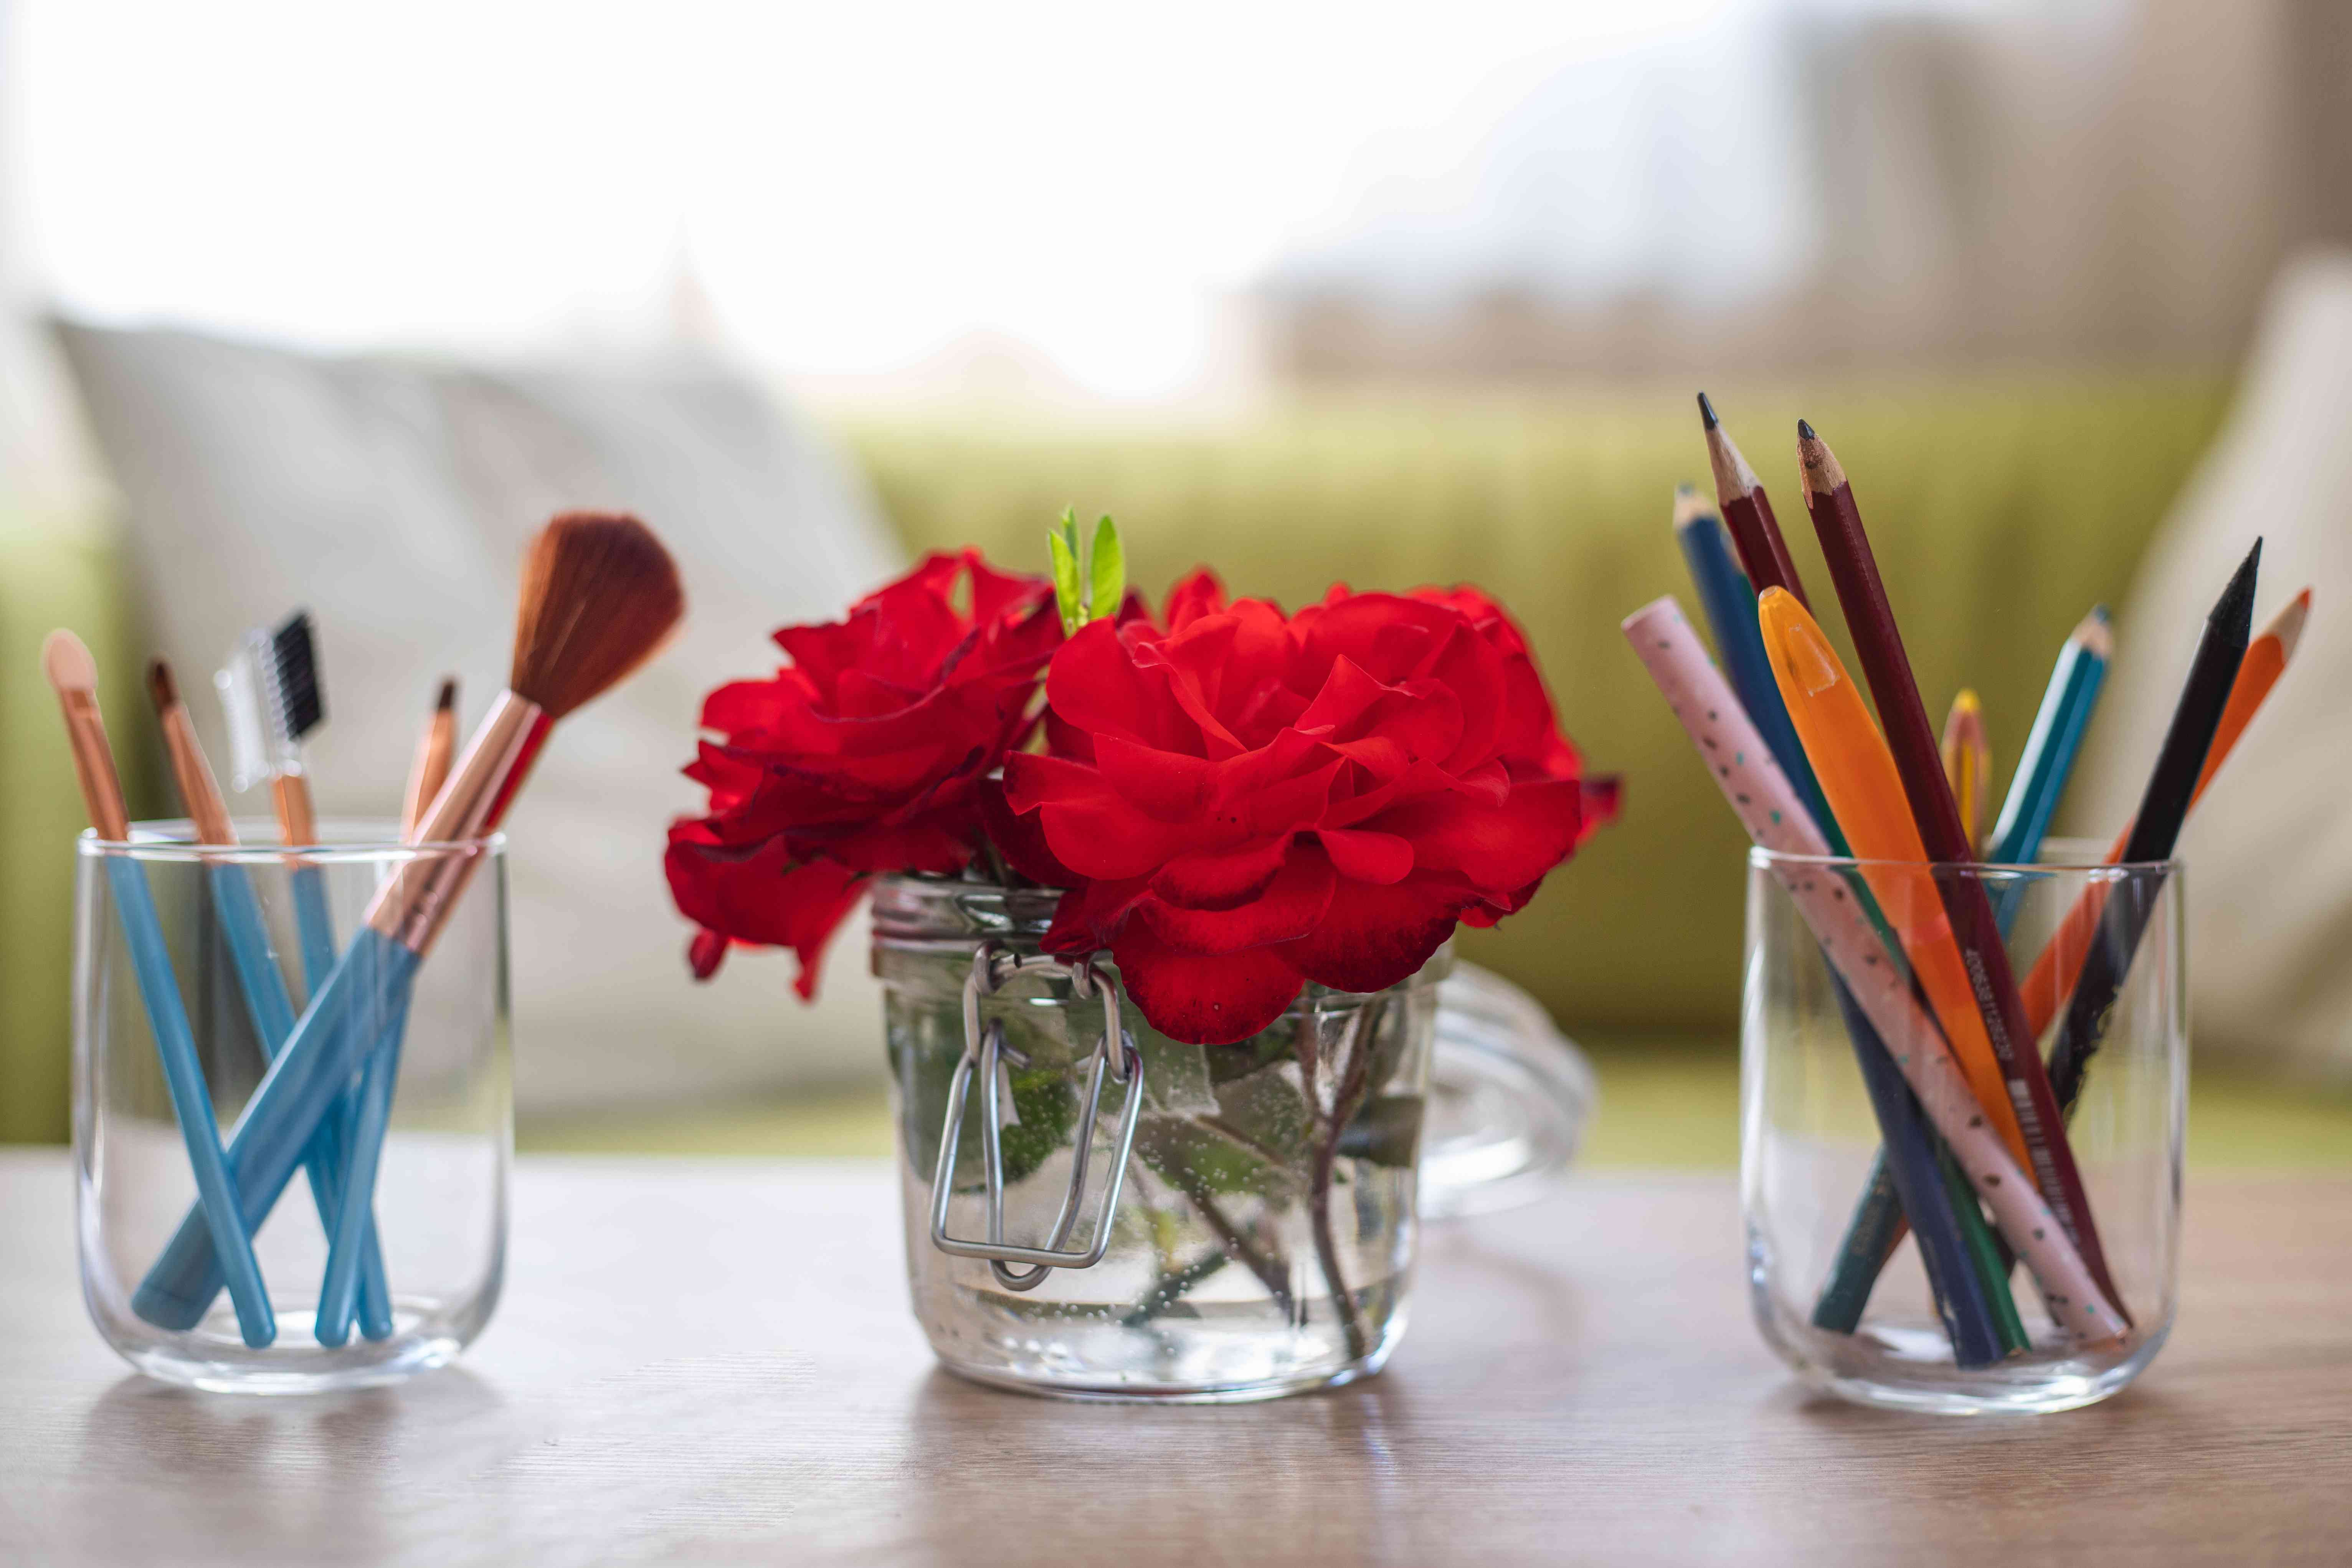 old glass containers upcycled into new vase and storage containers